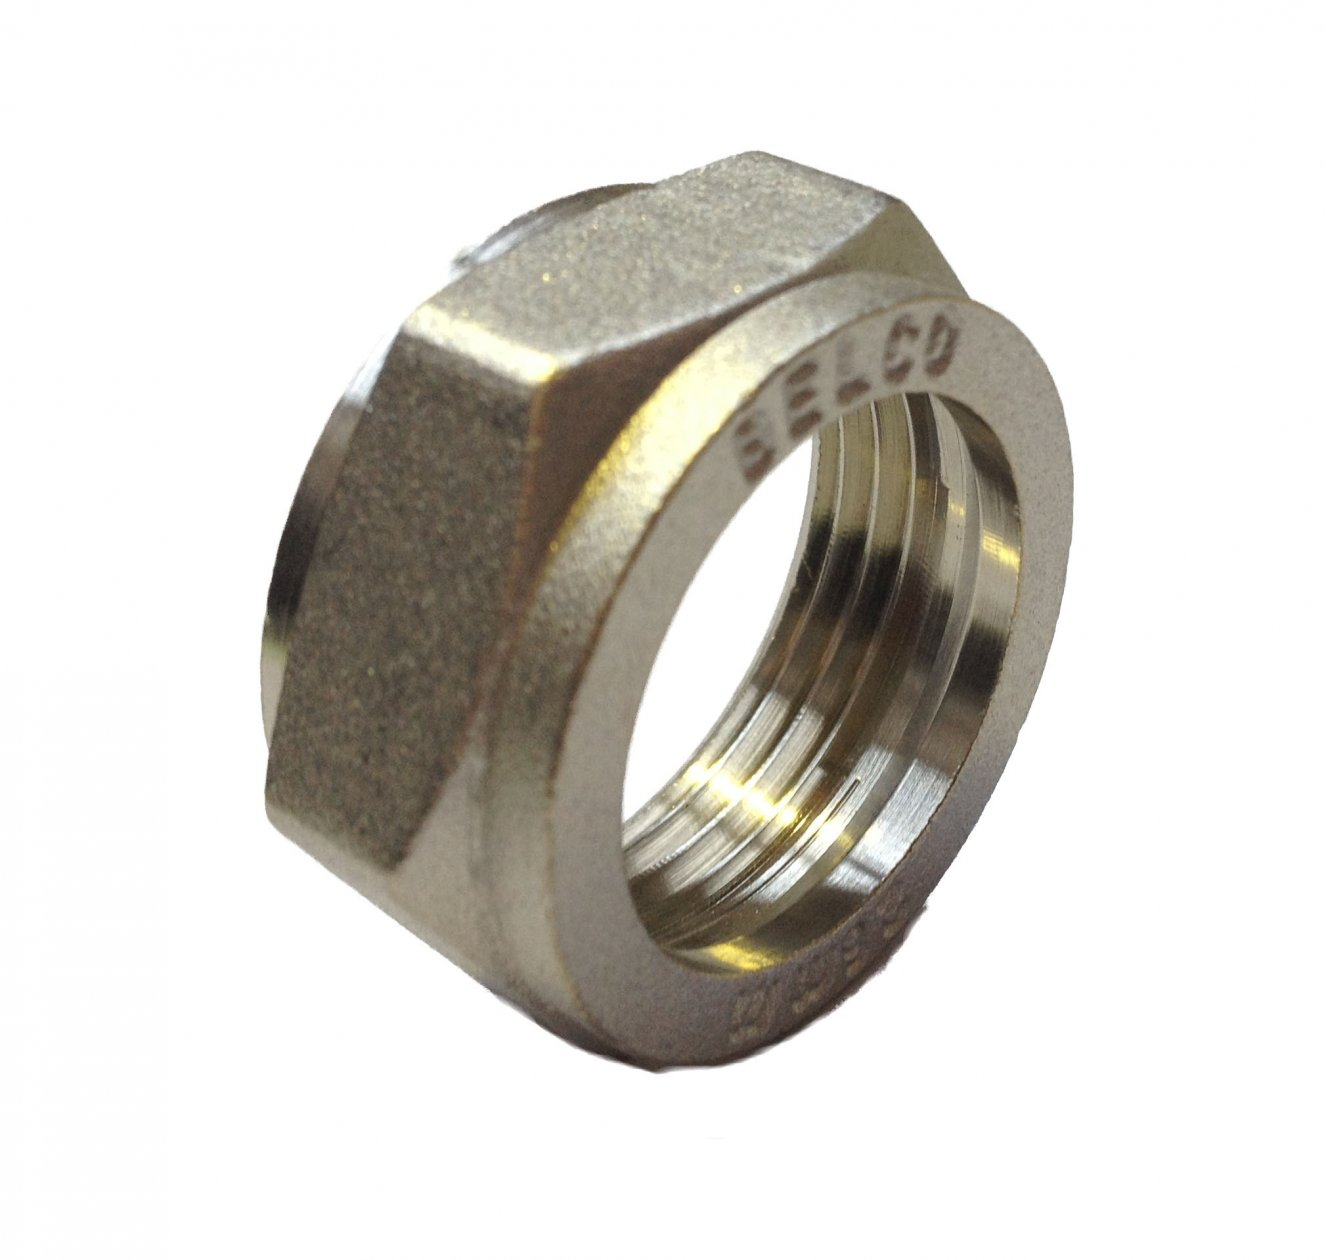 Compression Nut 16